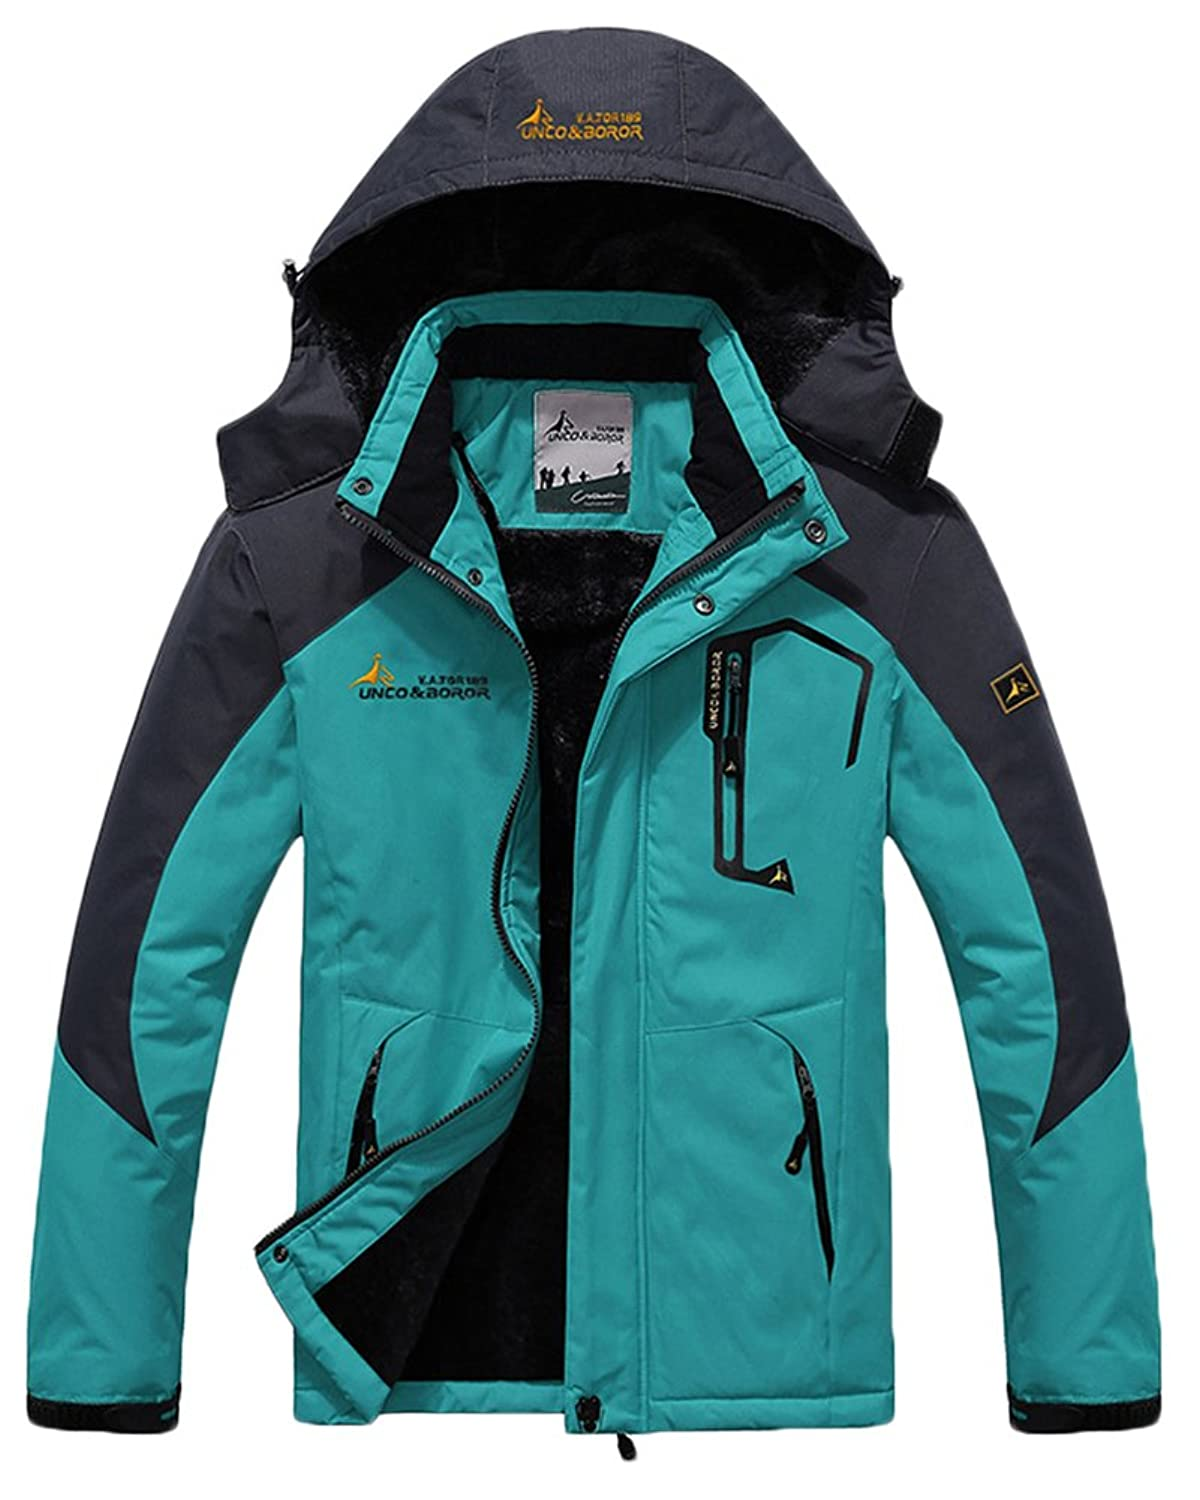 HengJia Men's Waterproof Mountain Jacket Fleece Windproof Ski Coat